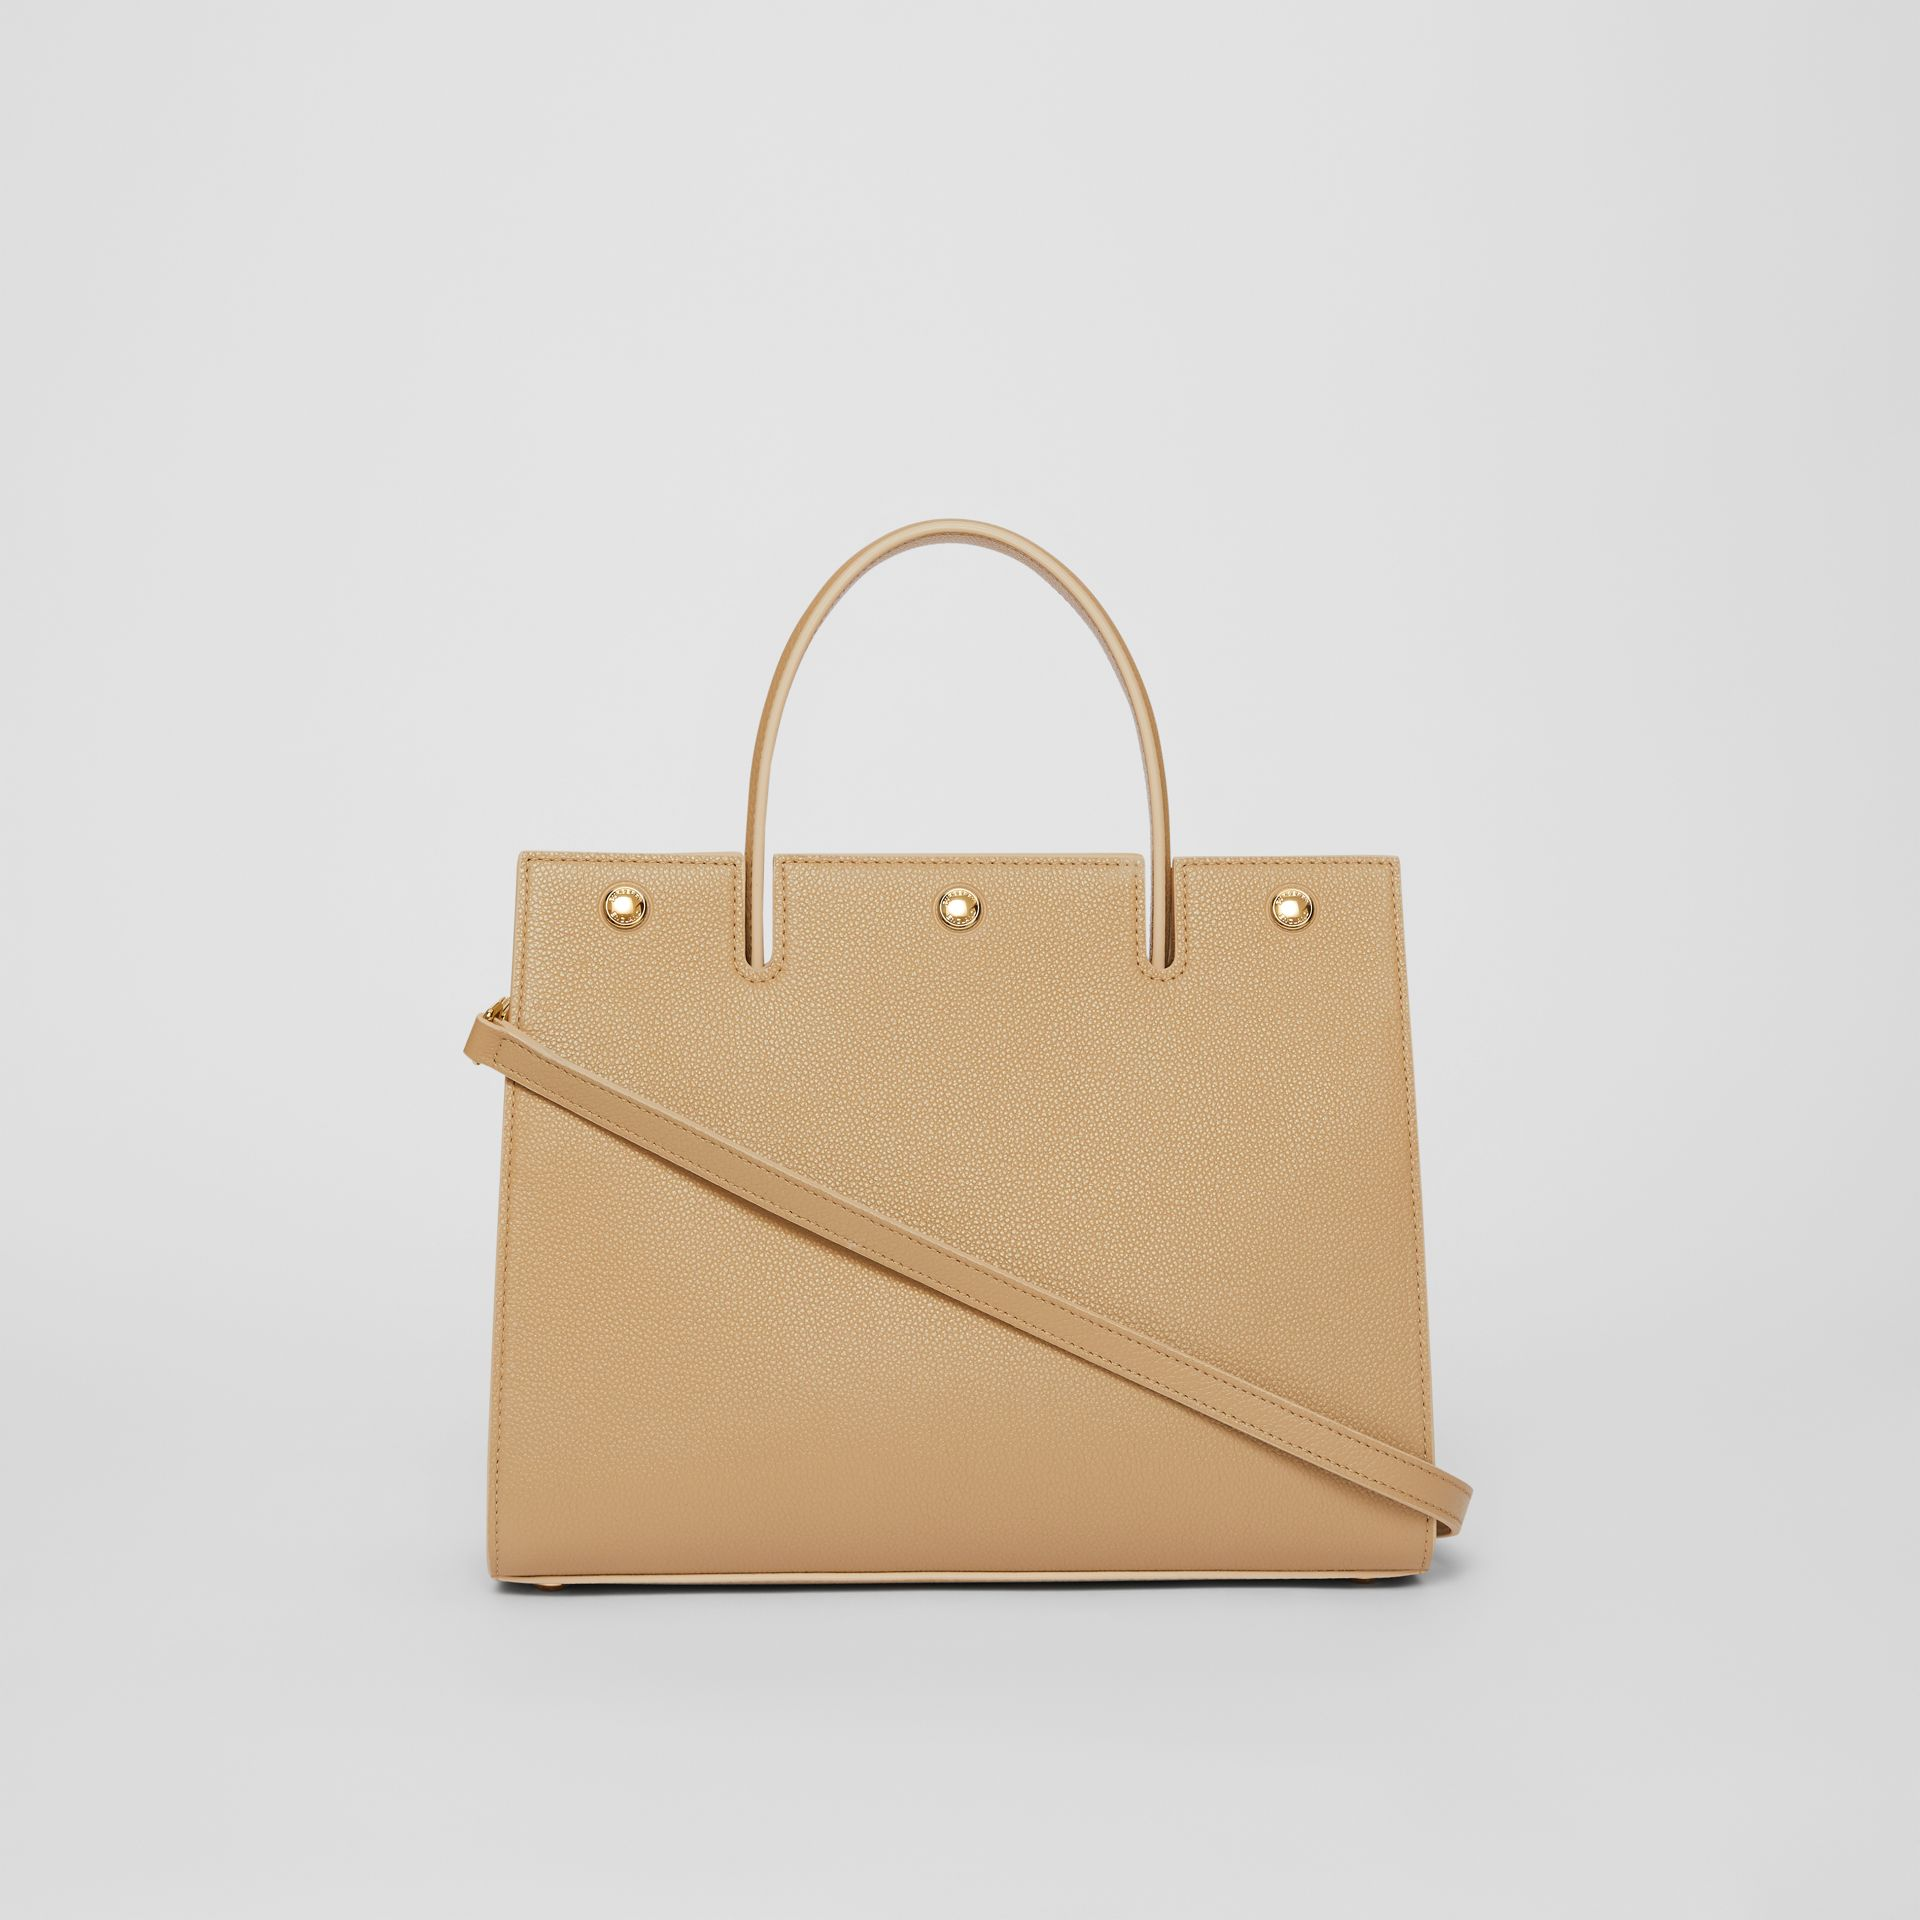 Small Leather Title Bag in Honey - Women | Burberry - gallery image 7